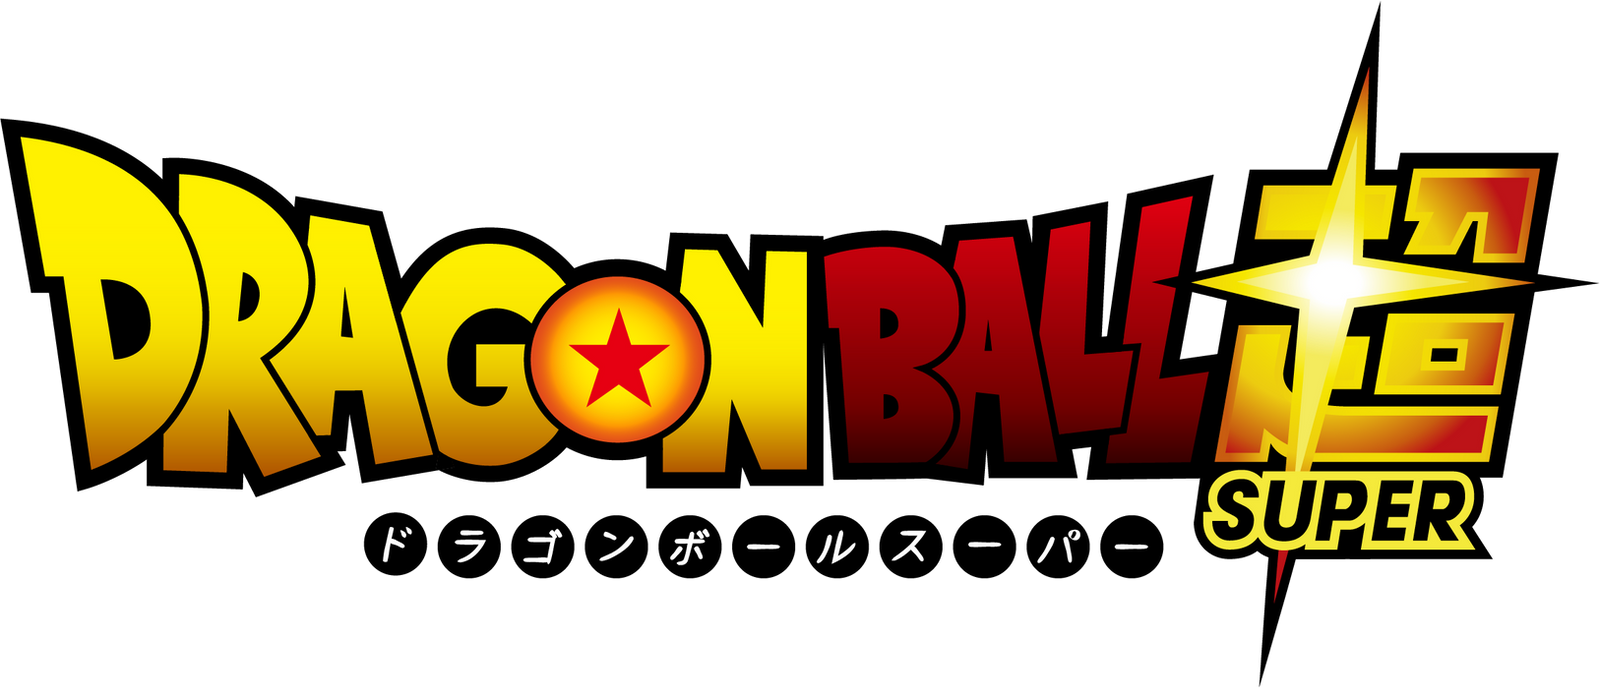 Populaire Dragon Ball Renders favourites by WDELLAGNOLO498 on DeviantArt NU61